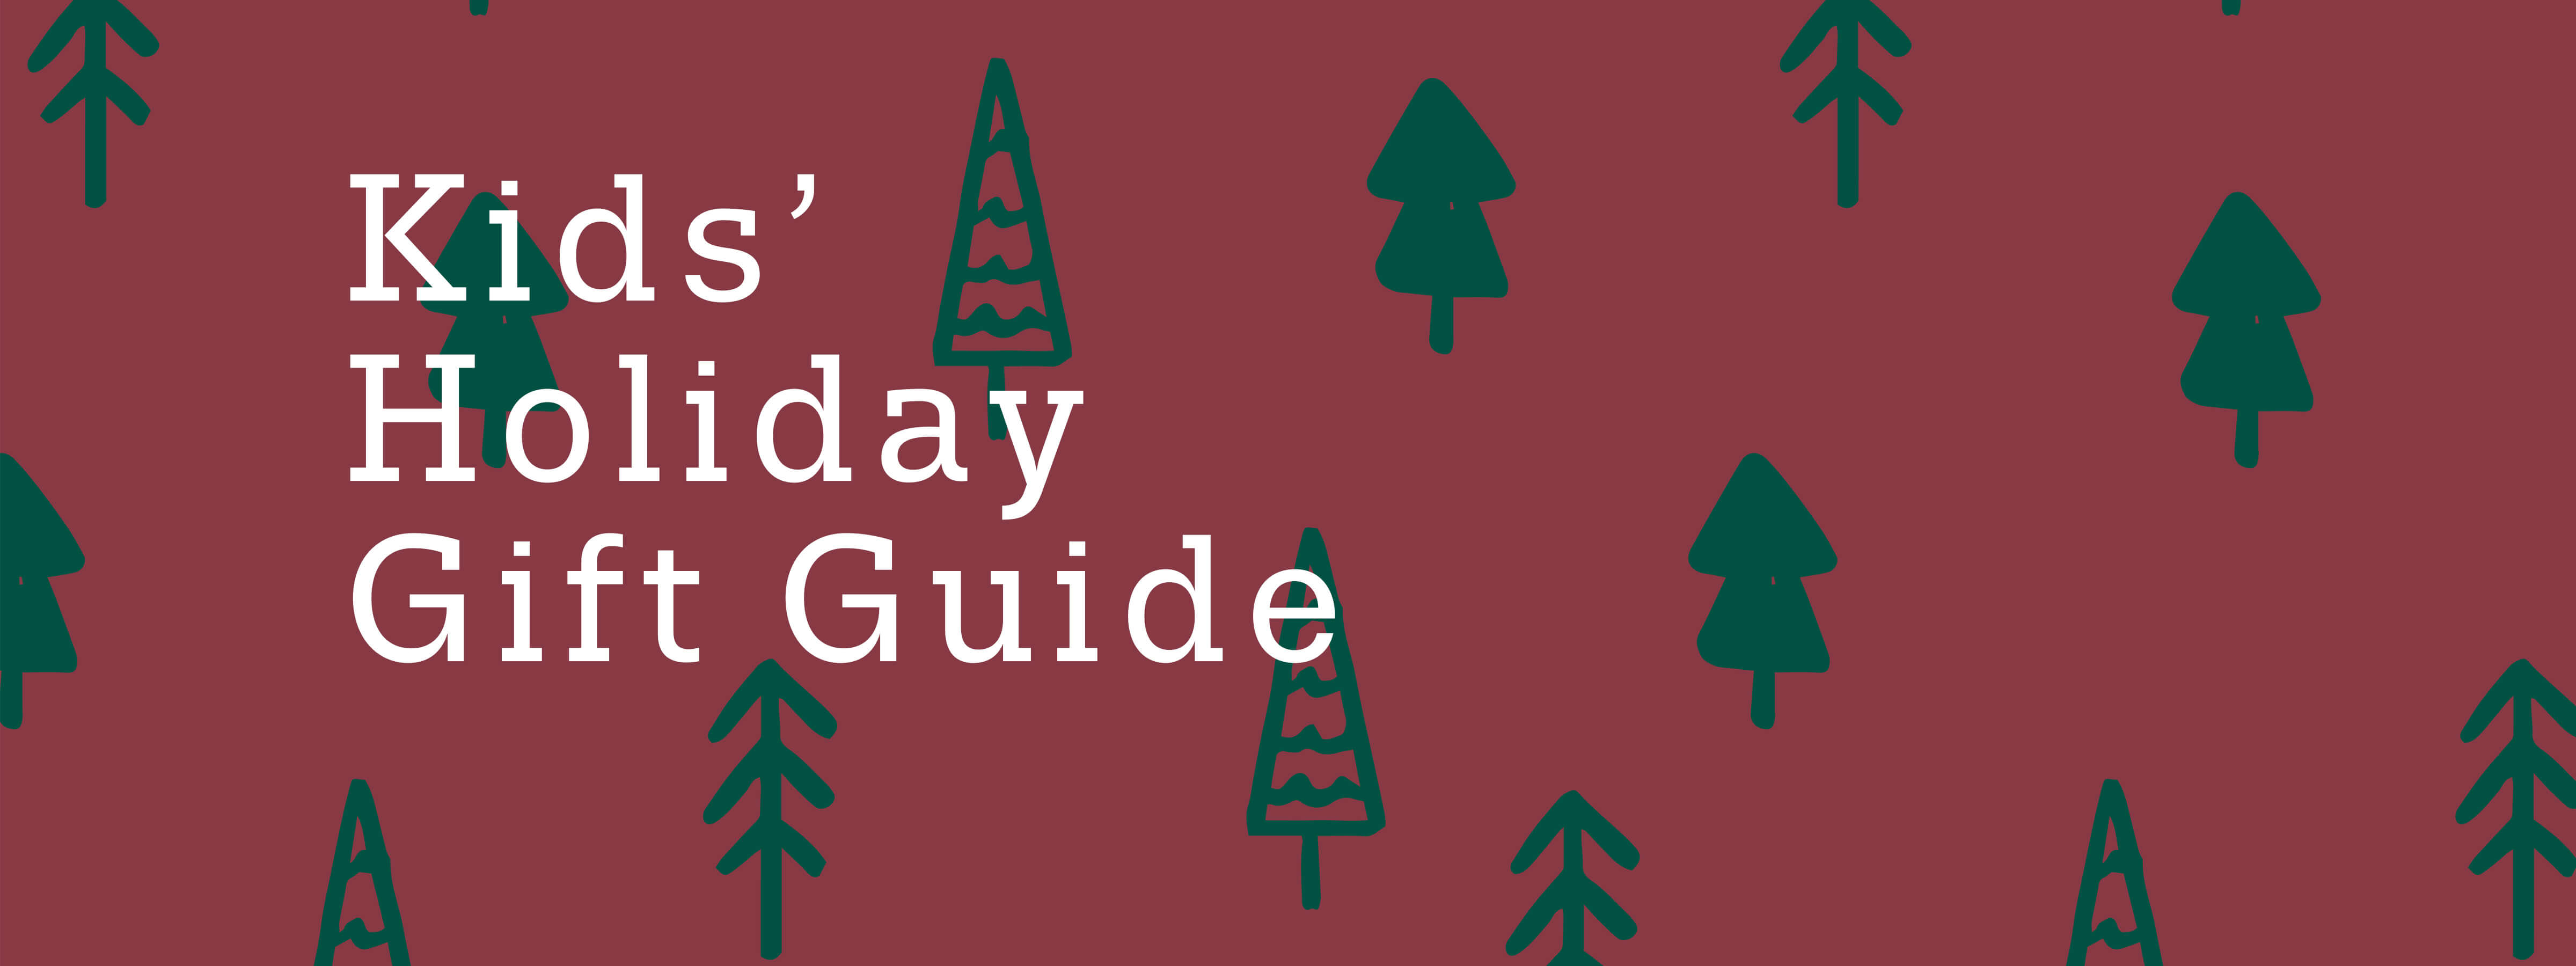 Kids' Holiday Gift Guide